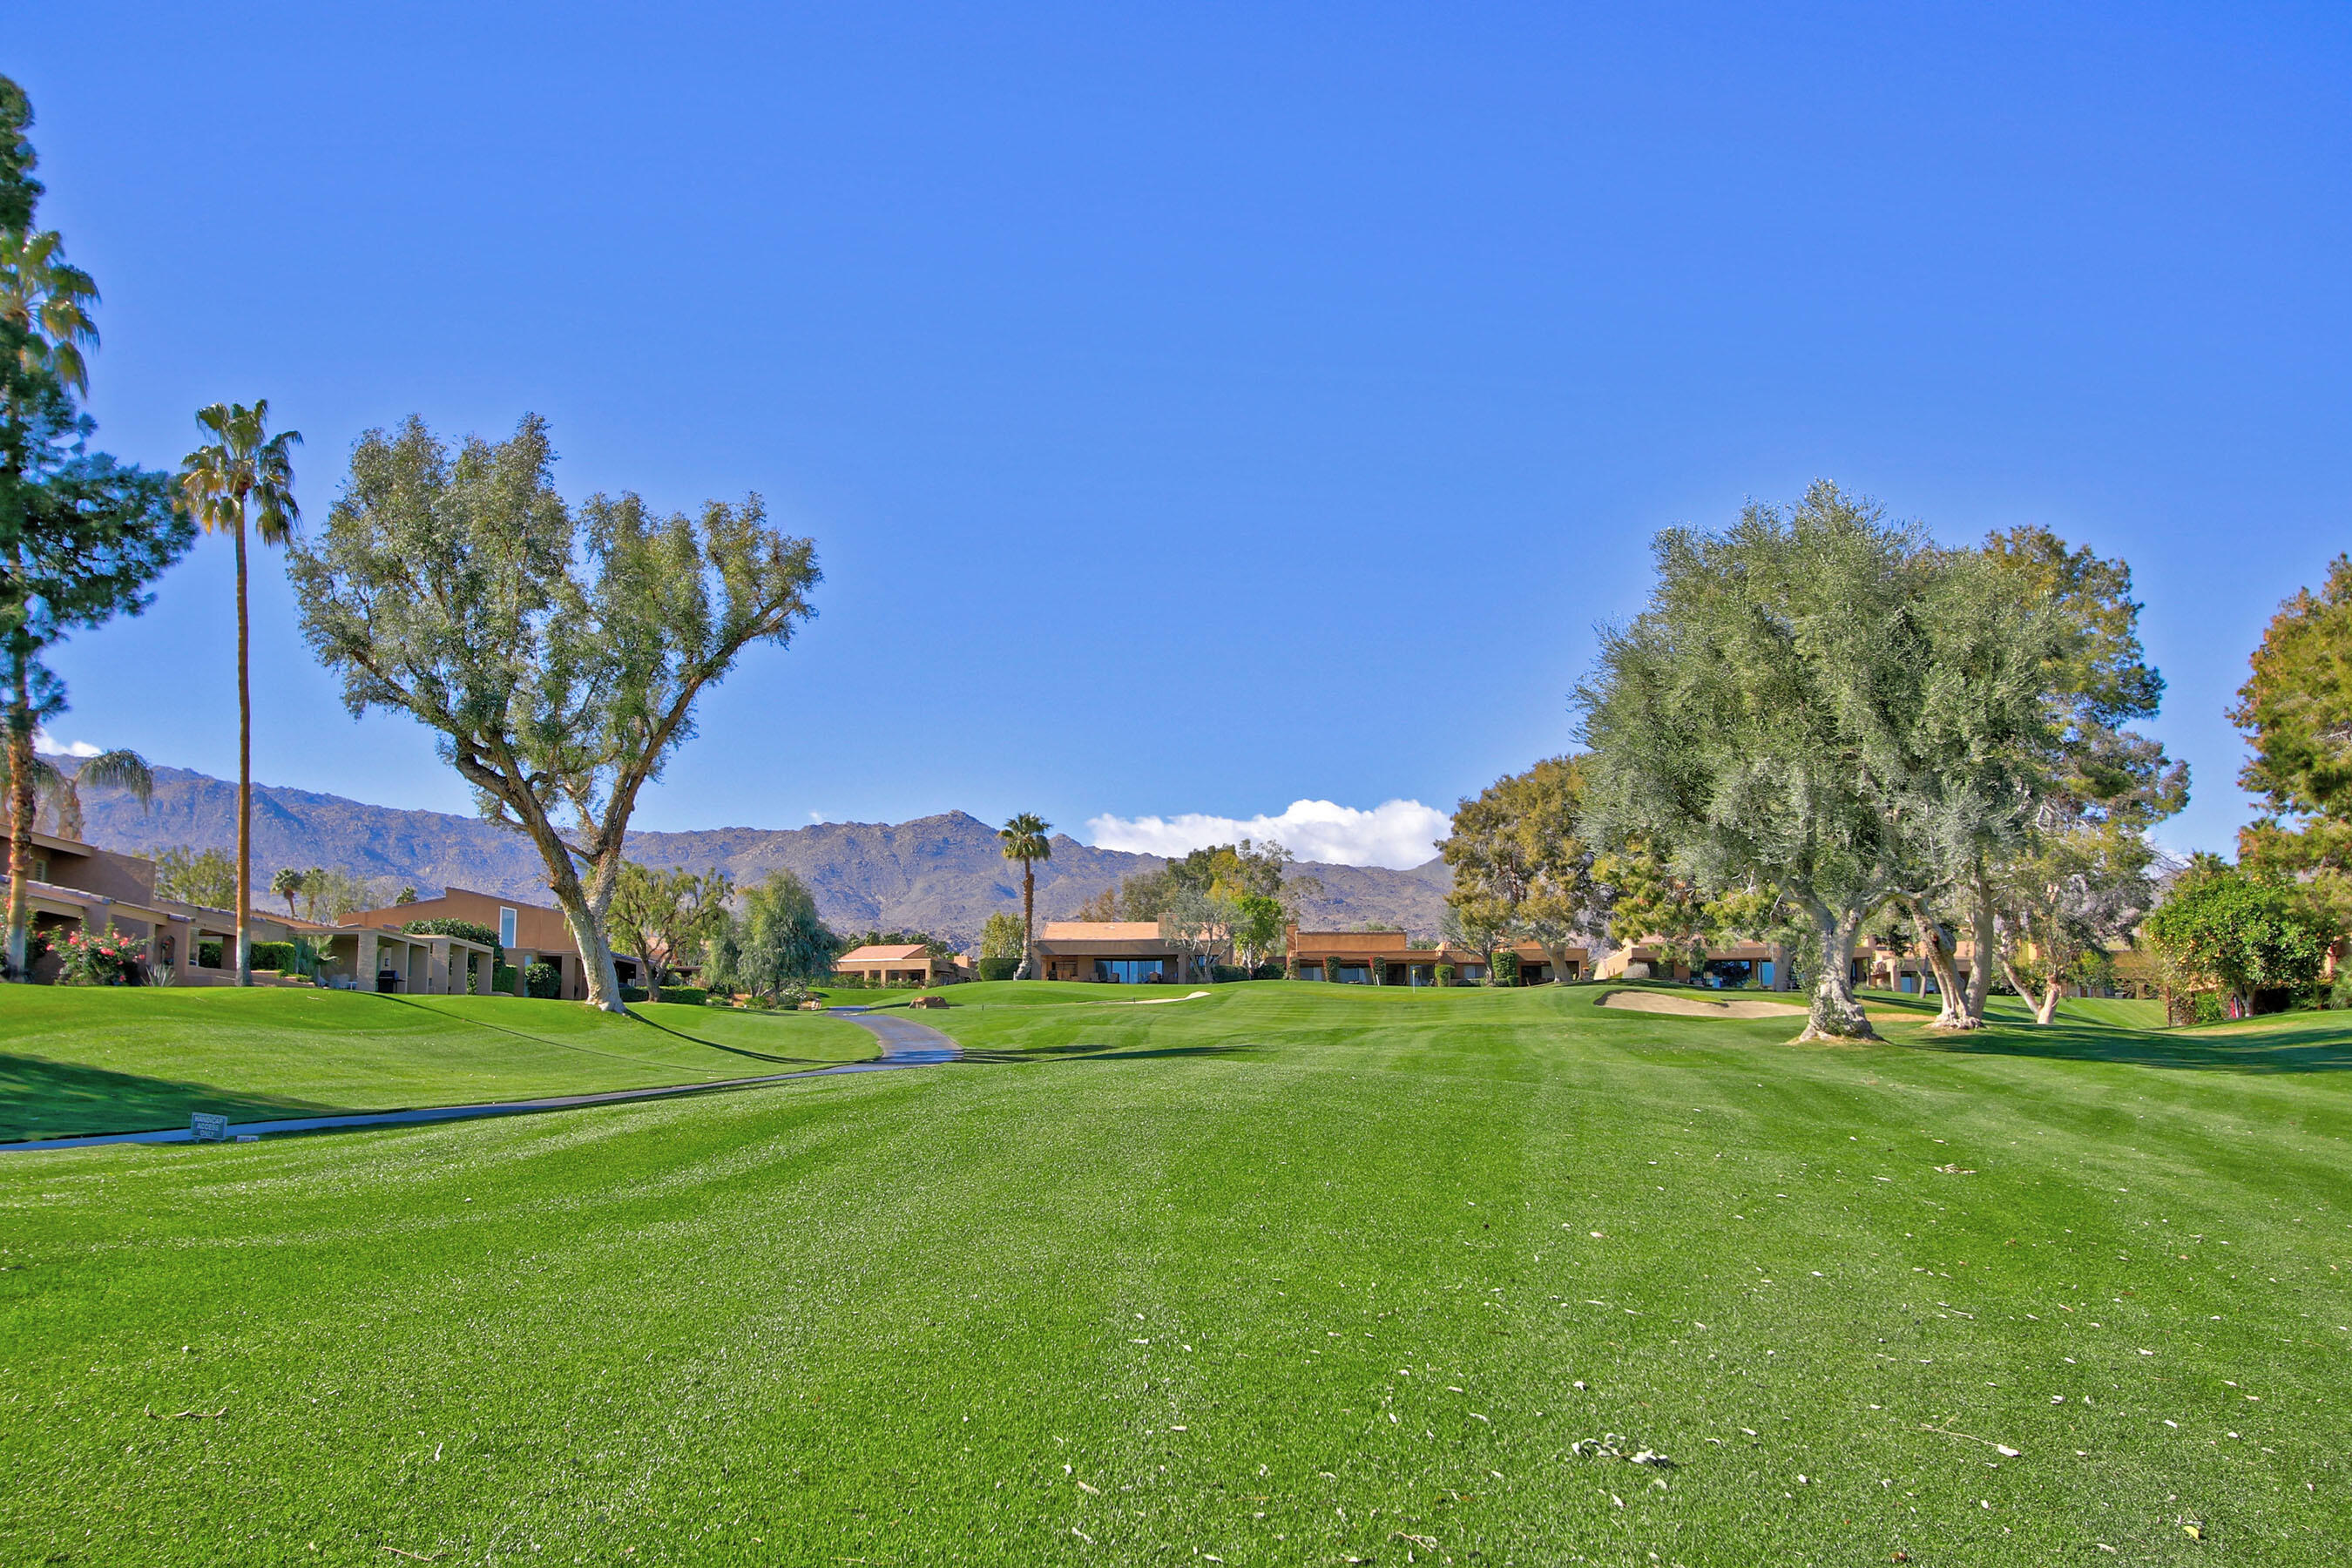 Golf Course location with Southern mountain views! Enjoy the perfect desert lifestyle in this Fairway Resort plan with high ceilings, lots of light and open Great Room design. Tile floors in living areas and bamboo flooring in the bedrooms. Open kitchen with granite counters, double ovens & pantry in the adjacent laundry room. Master suite has large bath, tile shower and walk-in closet plus added office area overlooking the 11th/12th fairways. Office has granite built-in double desk and room for a sitting area. Guest suite has private bath and patio area. There is a powder room in the hall. Patio area is tiled and expanded with privacy wall and also has firepit and southern mountain views. Impressive entry at the end of the cul-de-sac with interlocking pavers and a long driveway for extra parking. Entry courtyard patio has custom glass gate and double glass entry doors.  Double garage access into laundry/pantry area off kitchen. This has been full-time home and is immaculately maintained.